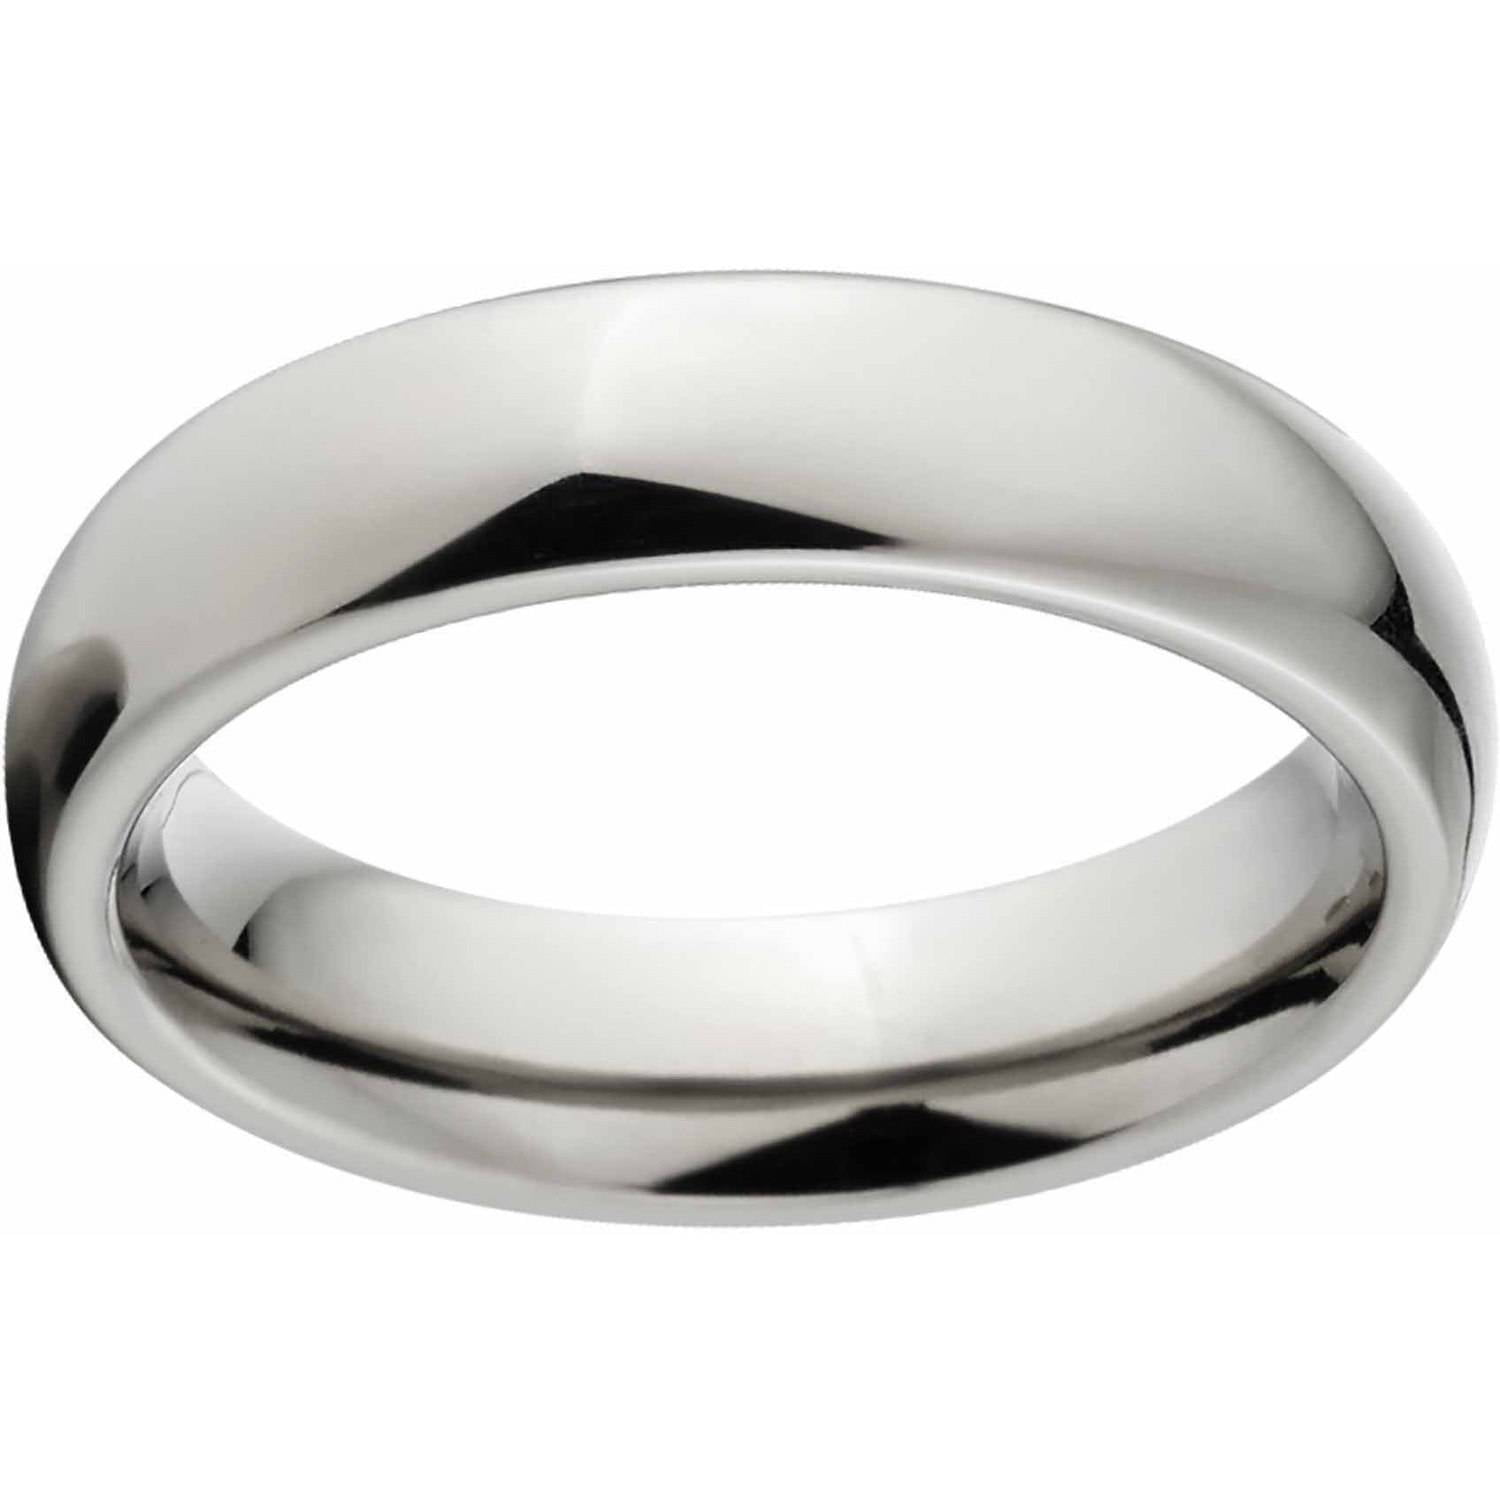 bands mens mirell d black men edward ring with midnite s slotted serenity titanium diamond